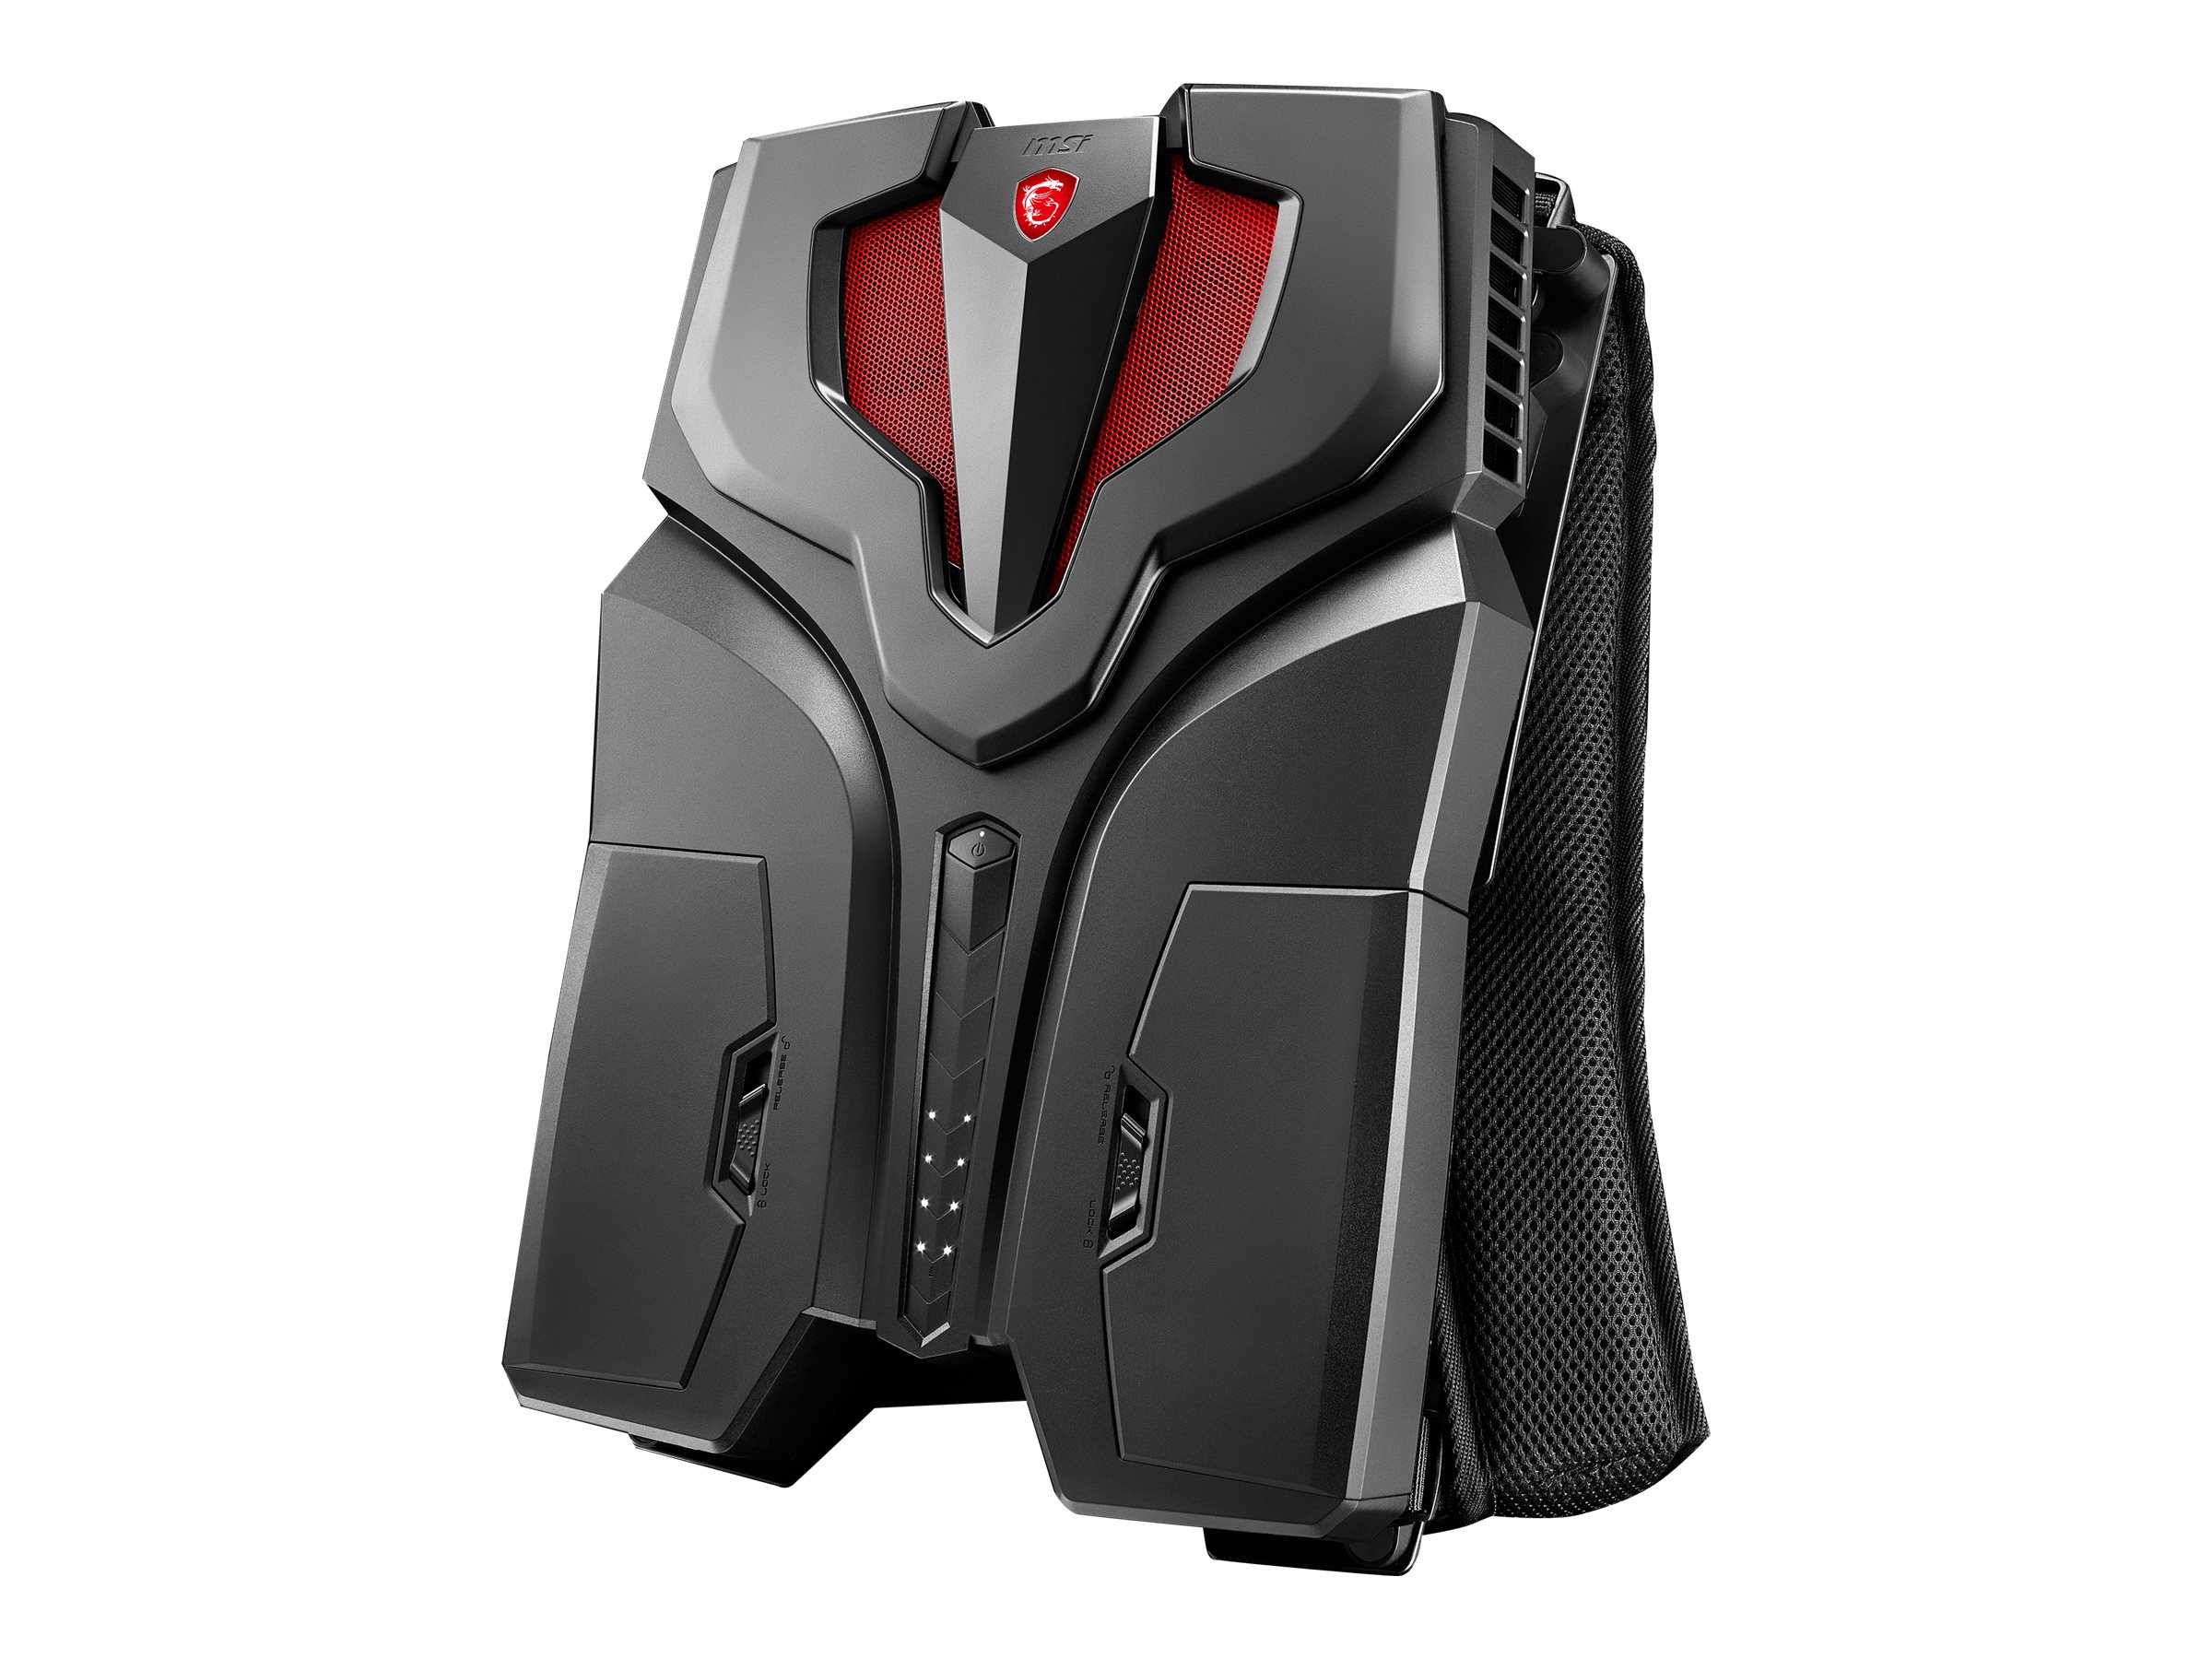 MSI VR One Backpack PC VR-Ready for HMD Core i7-6820HK GTX1070, VRONE006